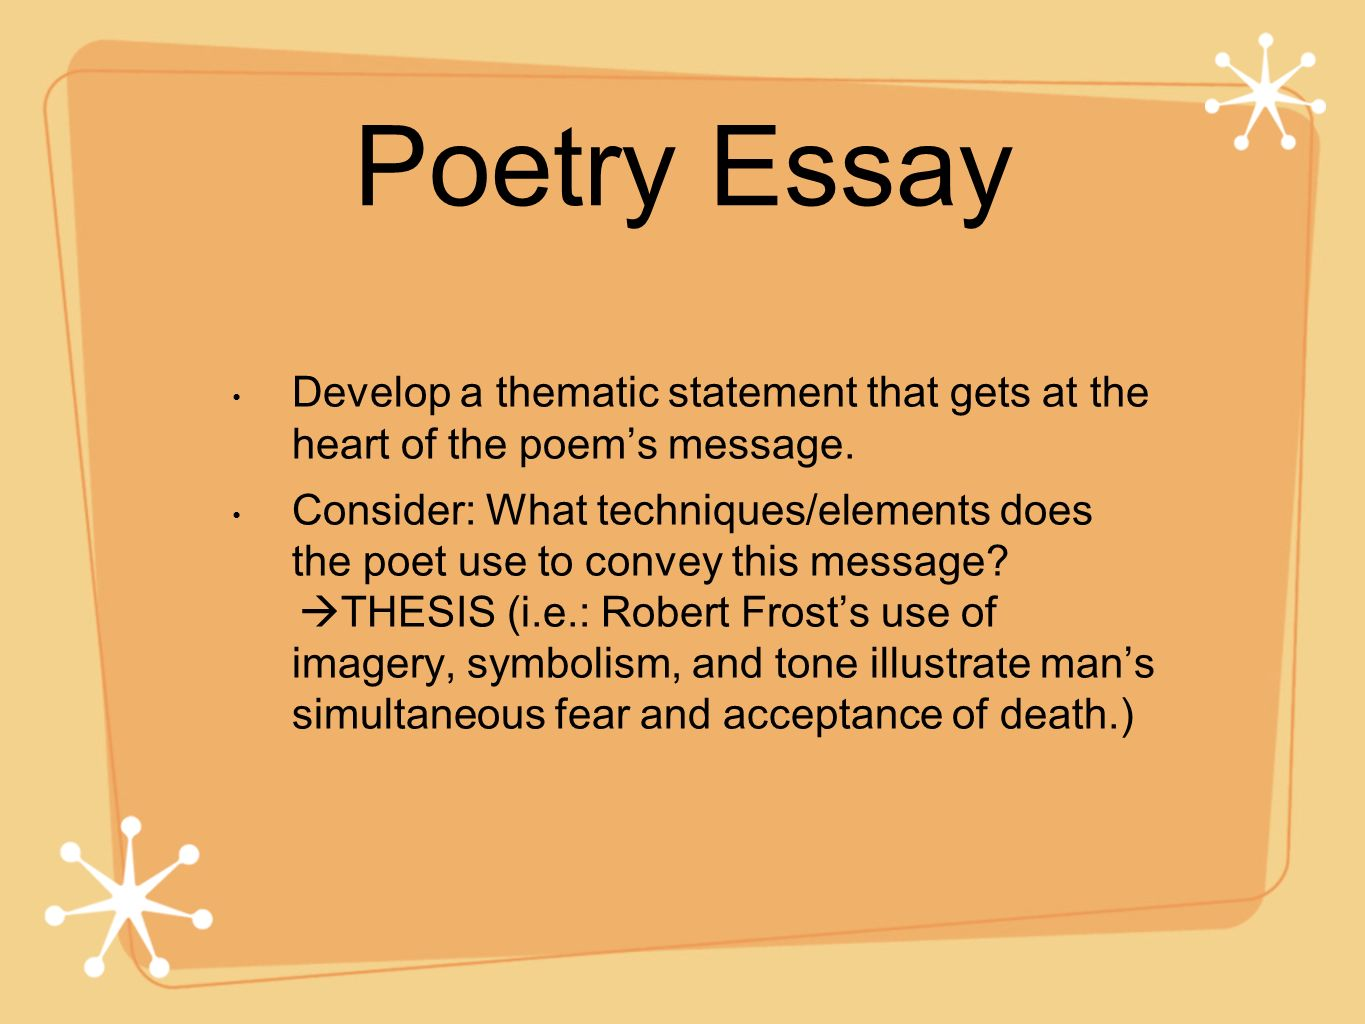 ap literature poem analysis essay Rubric for writing in ap literature and composition i will be using this rubric for all essay assignments 9-8 these essays effectively and cohesively address the.